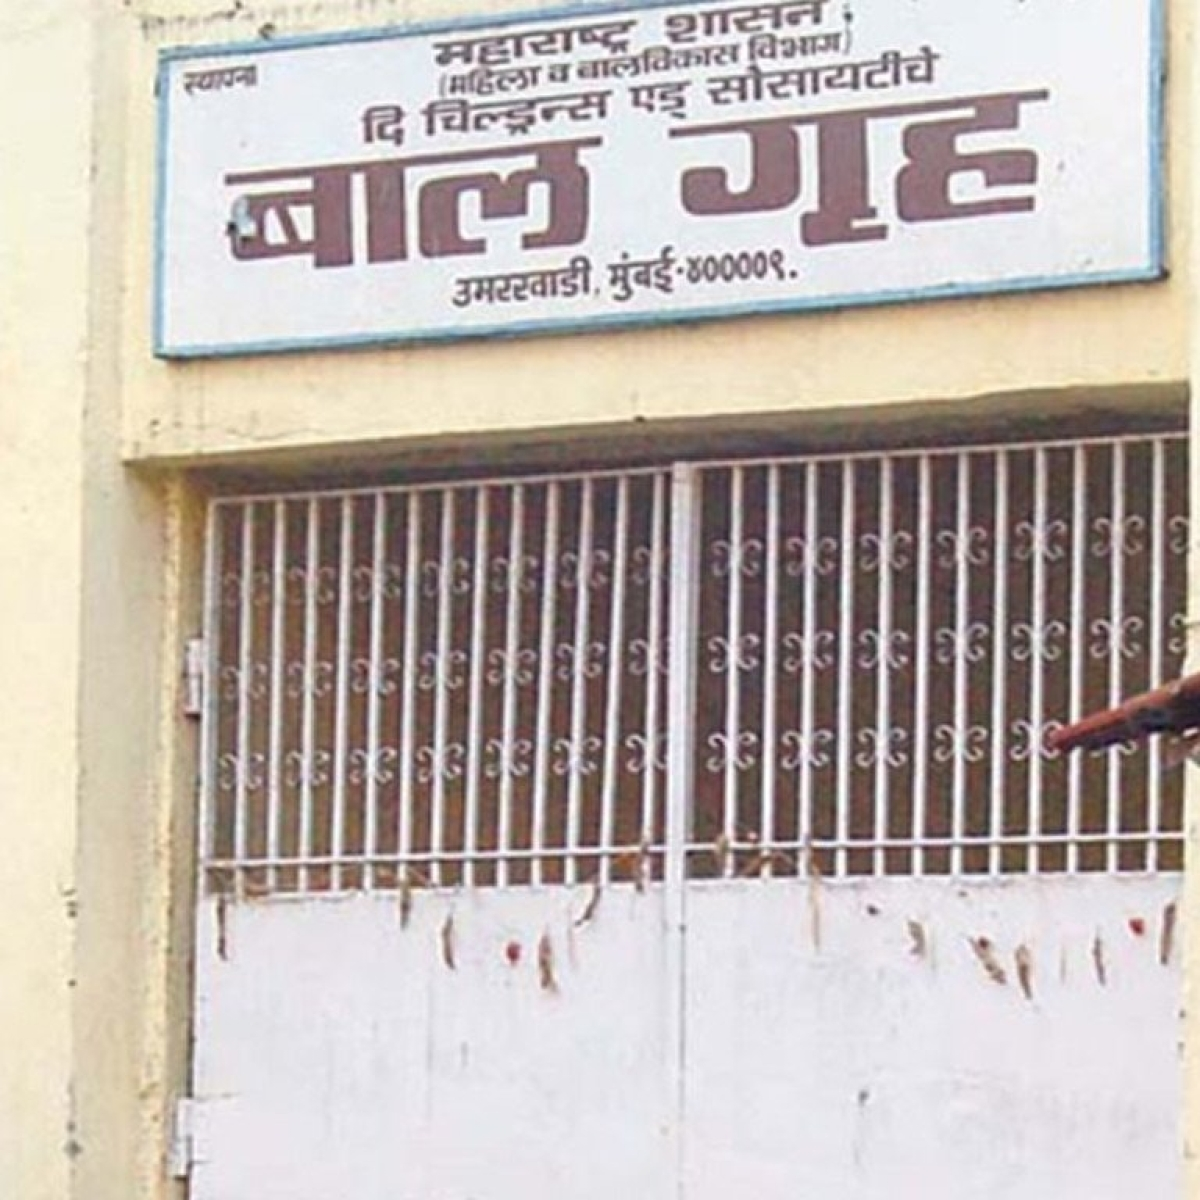 Mumbai: Three boys who escaped Dongri Children Home, return back hours later